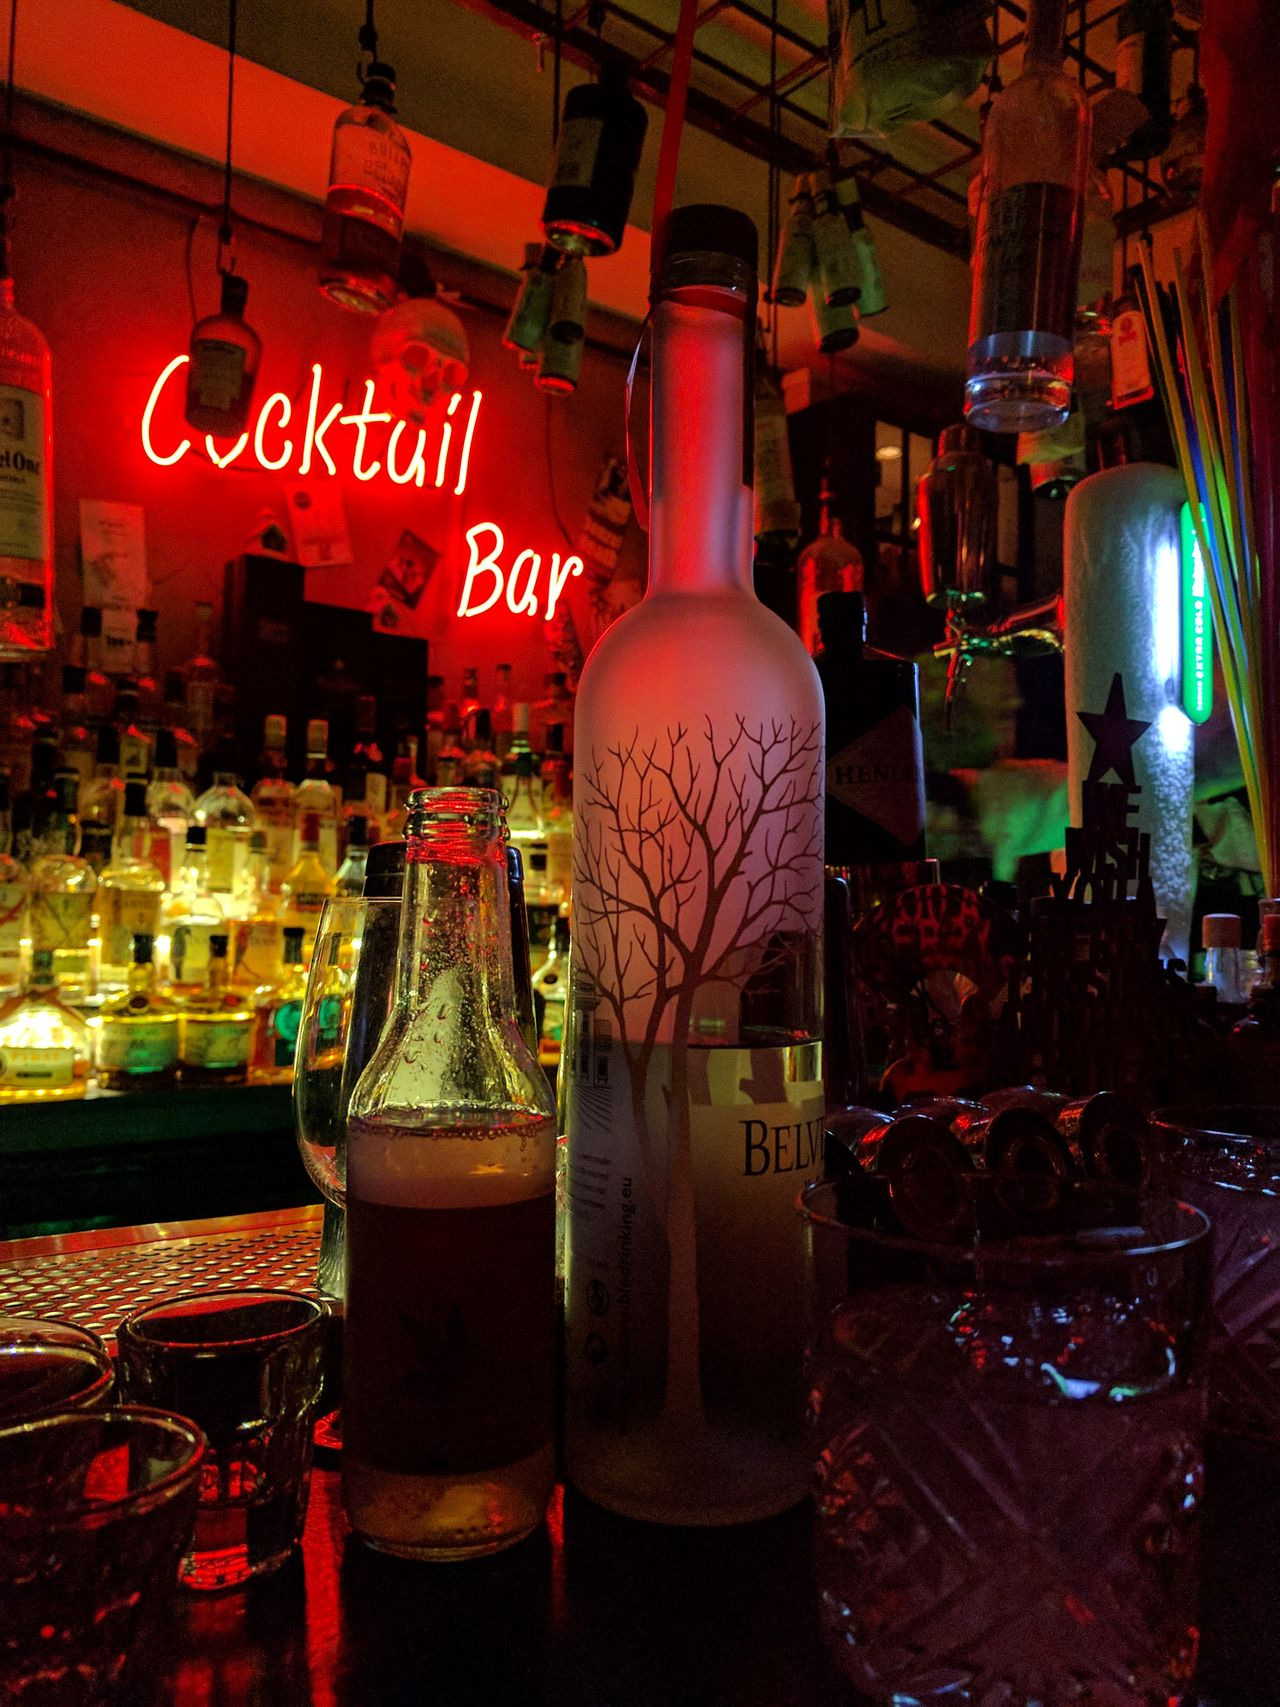 Club Night Baristas Cocktail Barnight Belveder Drink Cocktailbar